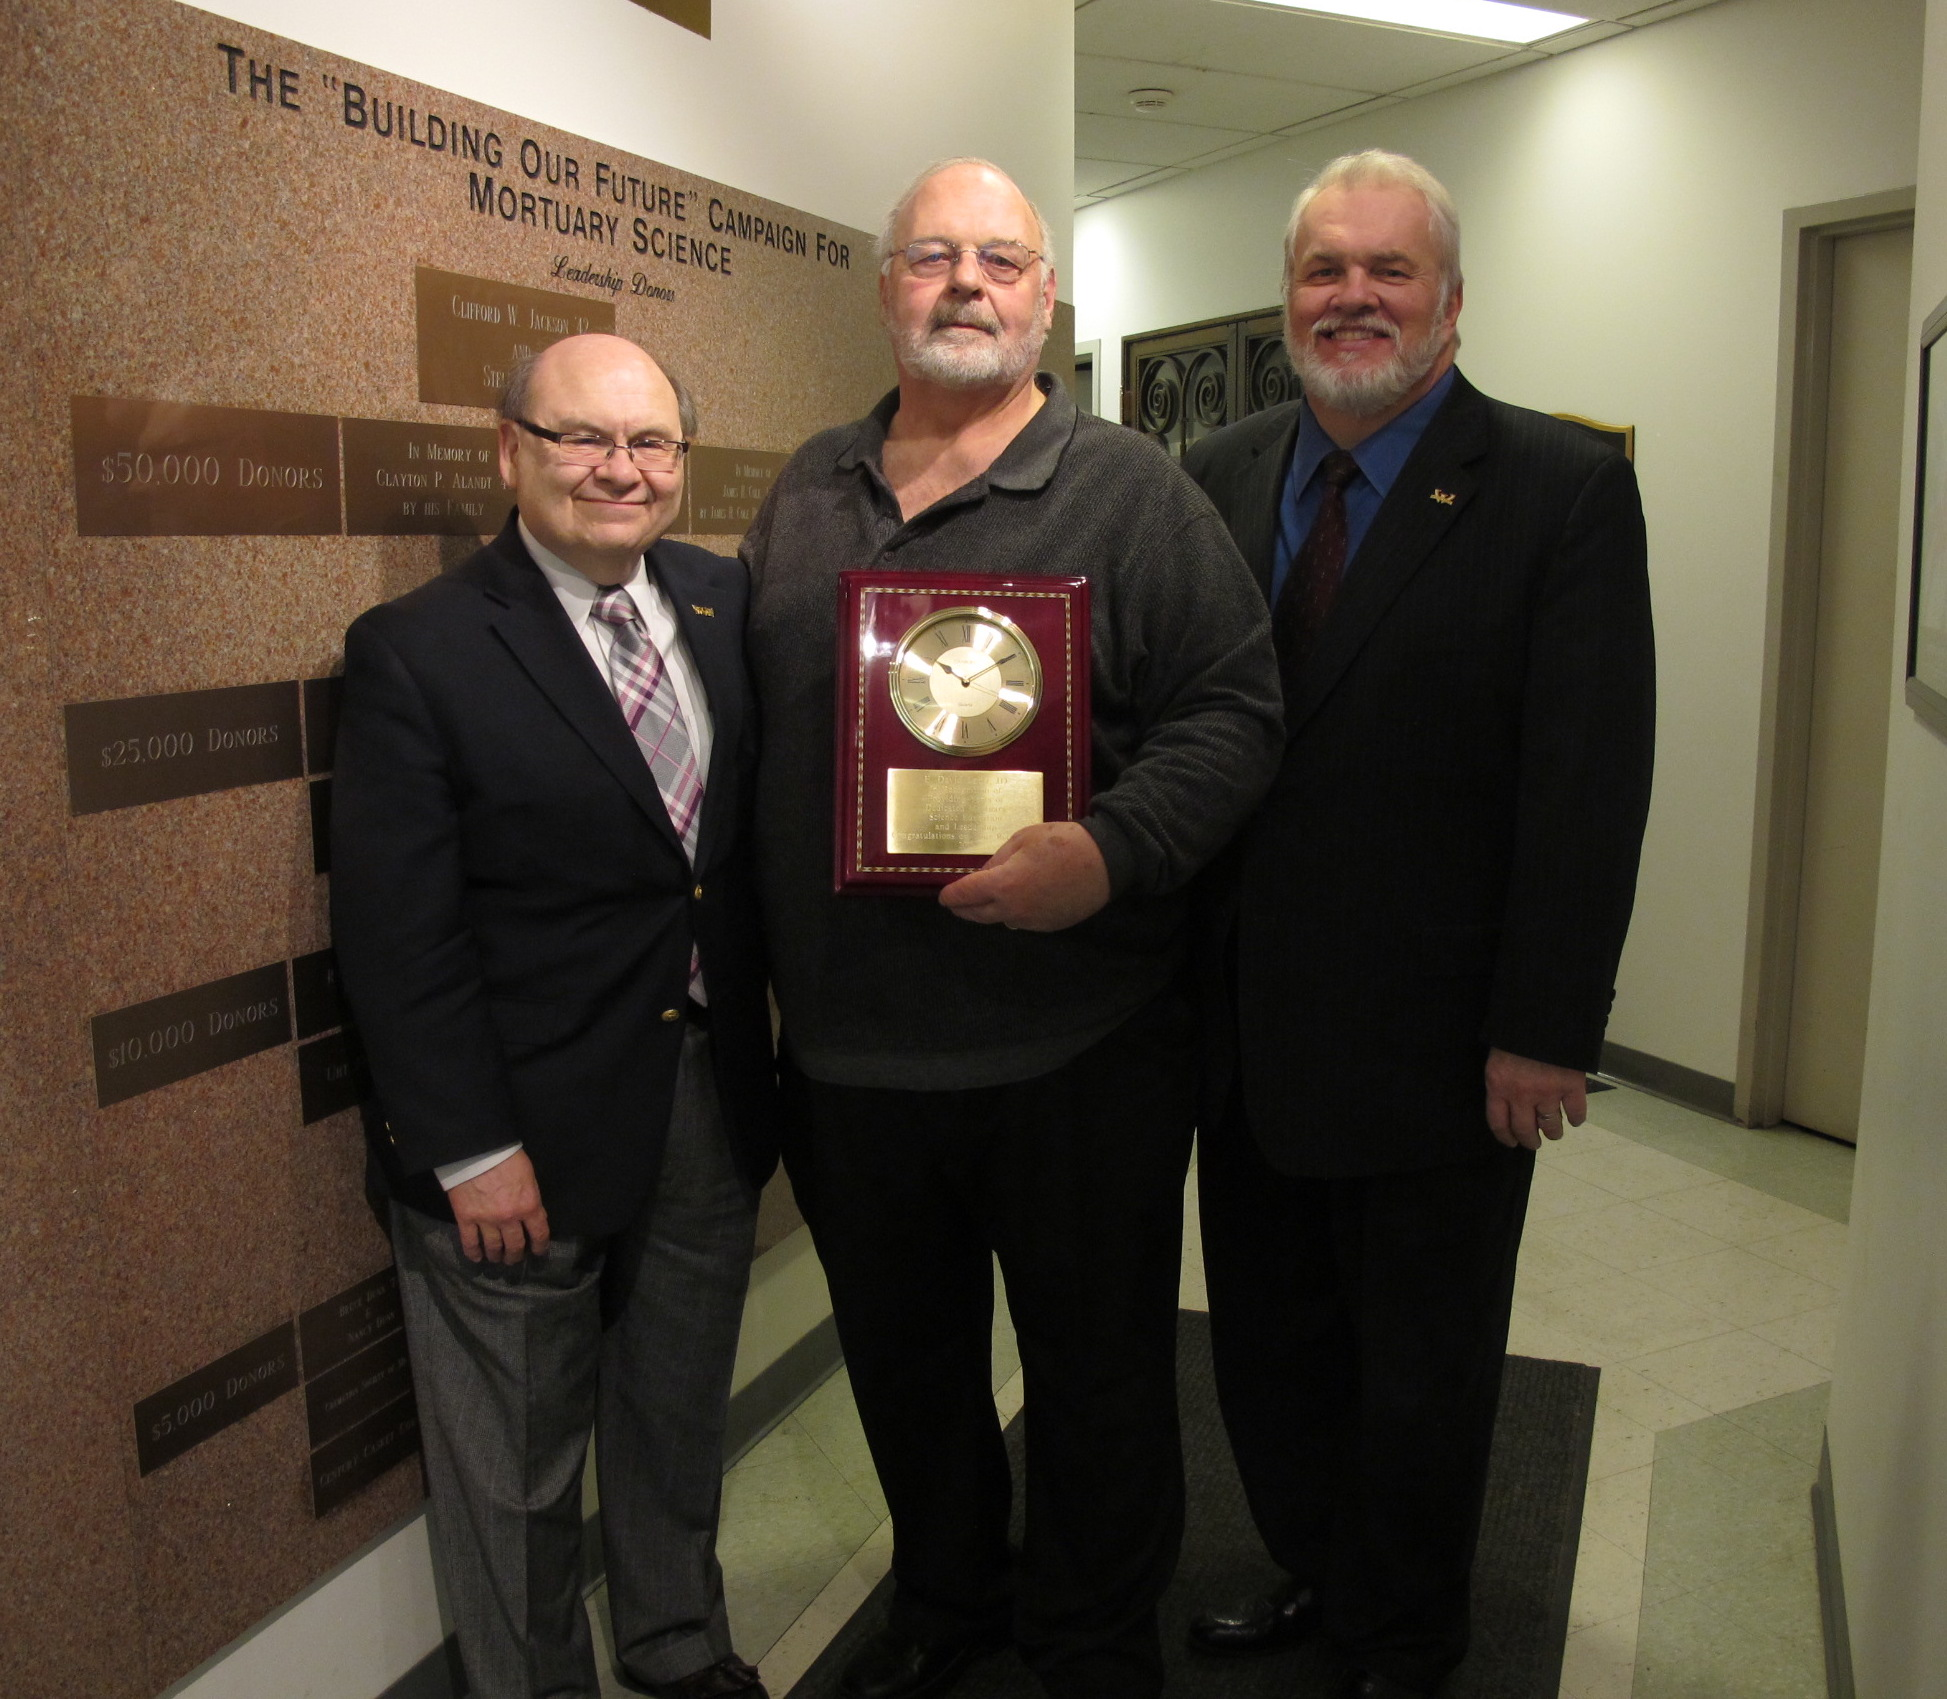 Peter Frade, David Ladd and Howard Normile at Ladd's 2013 retirement party in the Mortuary Science Building